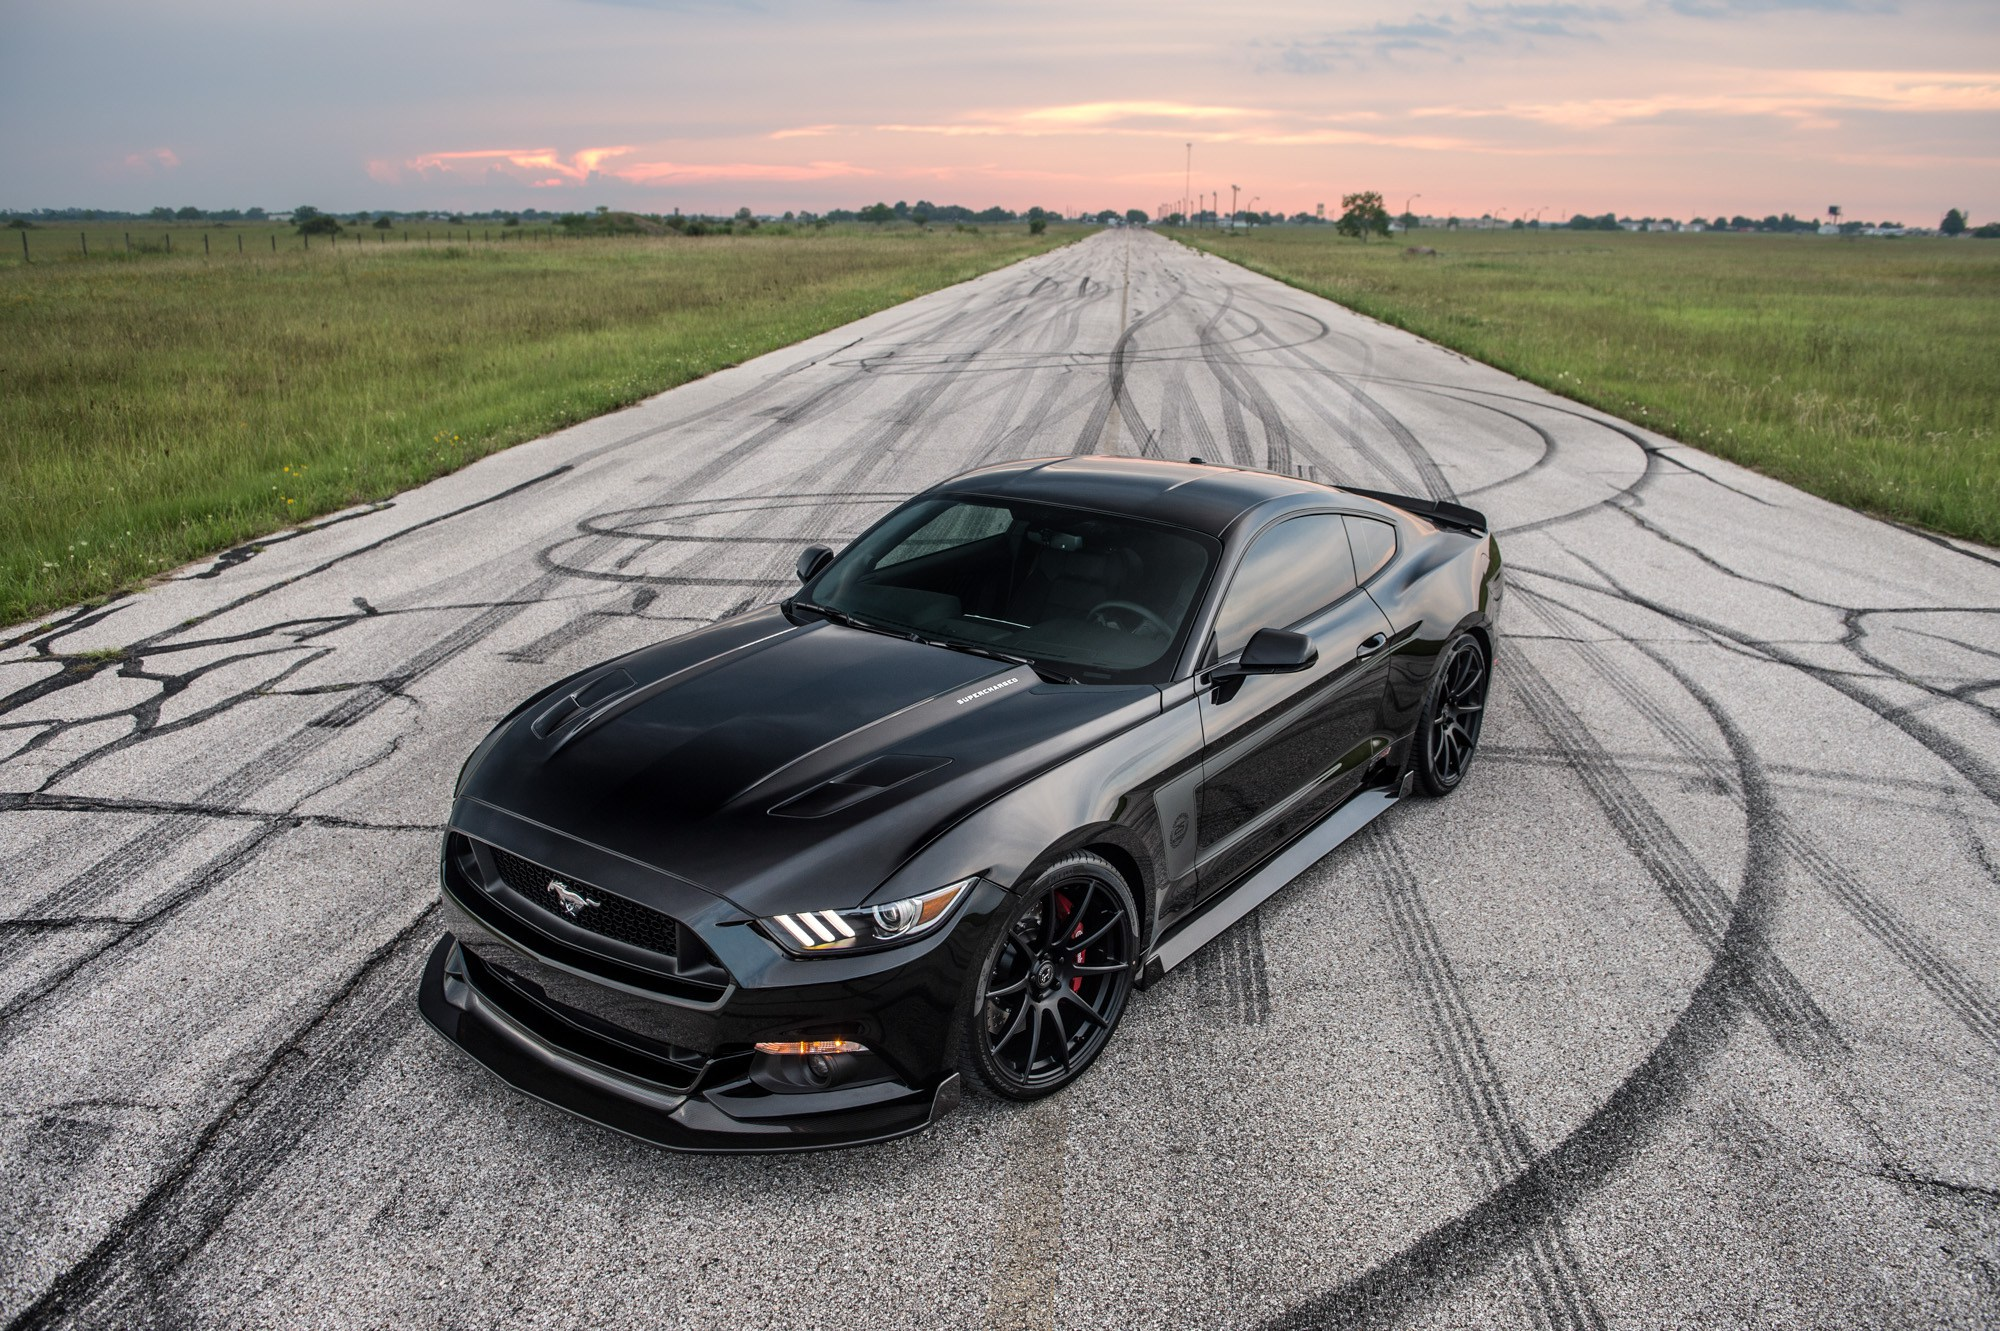 2016 ford mustang gt 25th anniversary hpe800 edition by hennessey